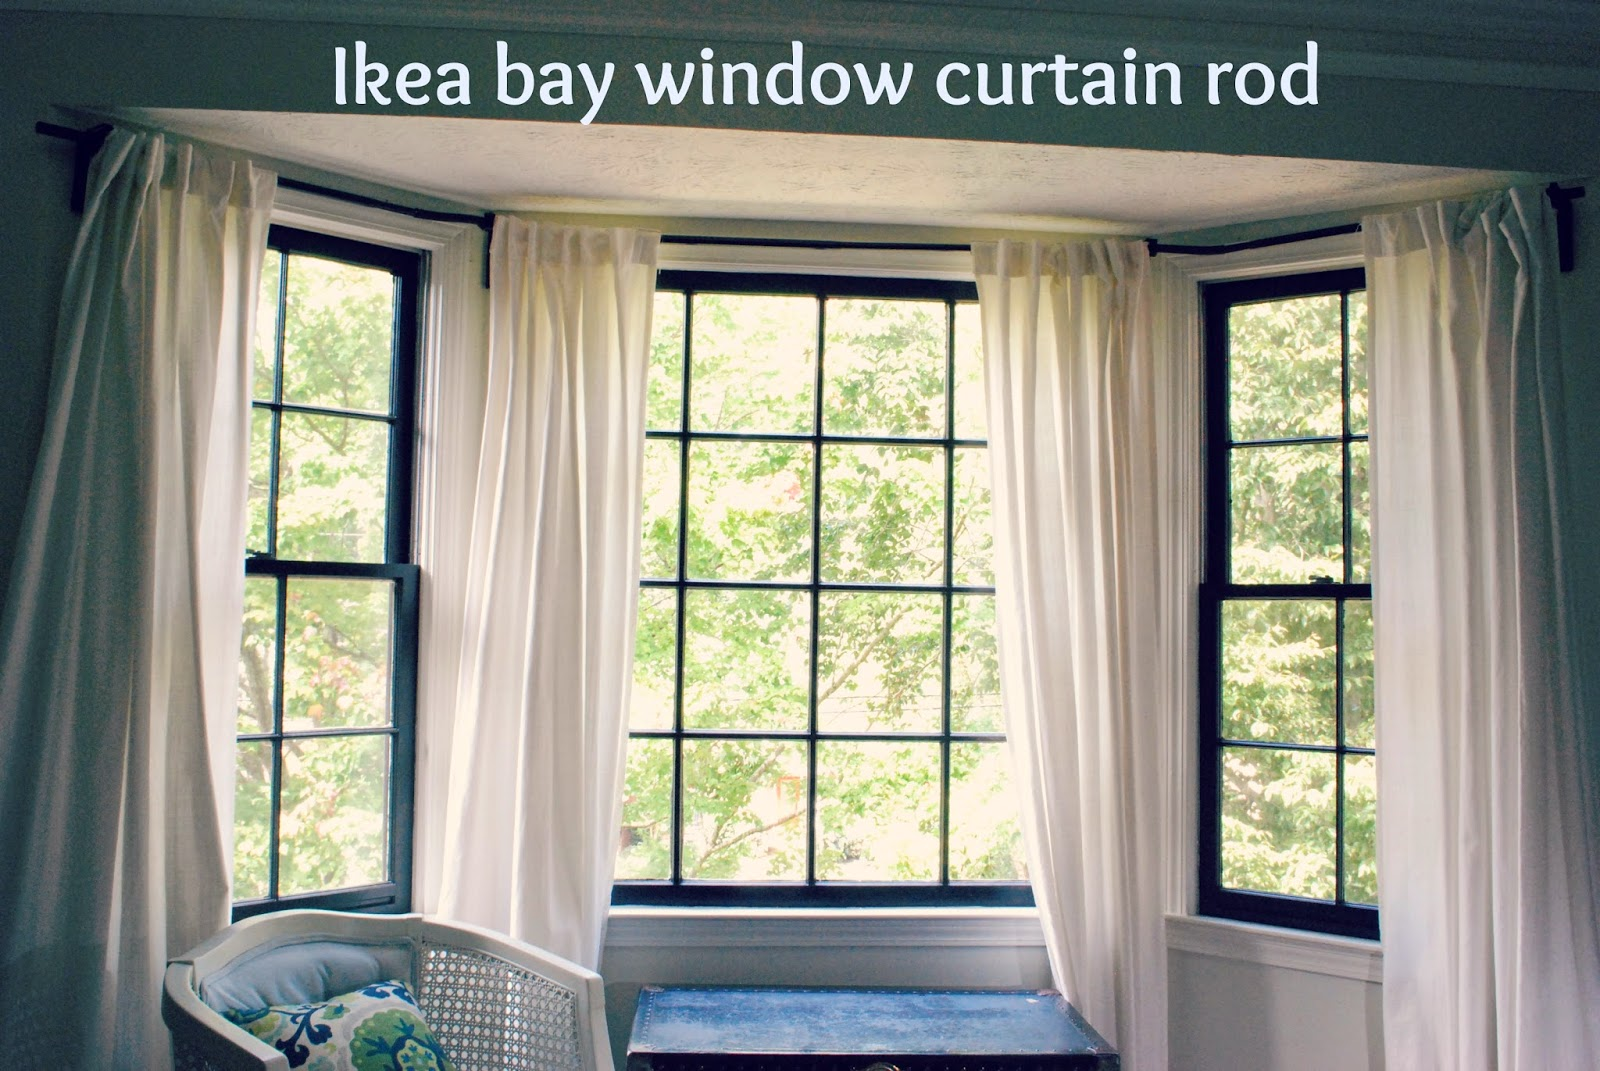 Image of: Blue Yellow Bay Window Curtain Rod How to Install Bay Window Curtain Rods Effectively